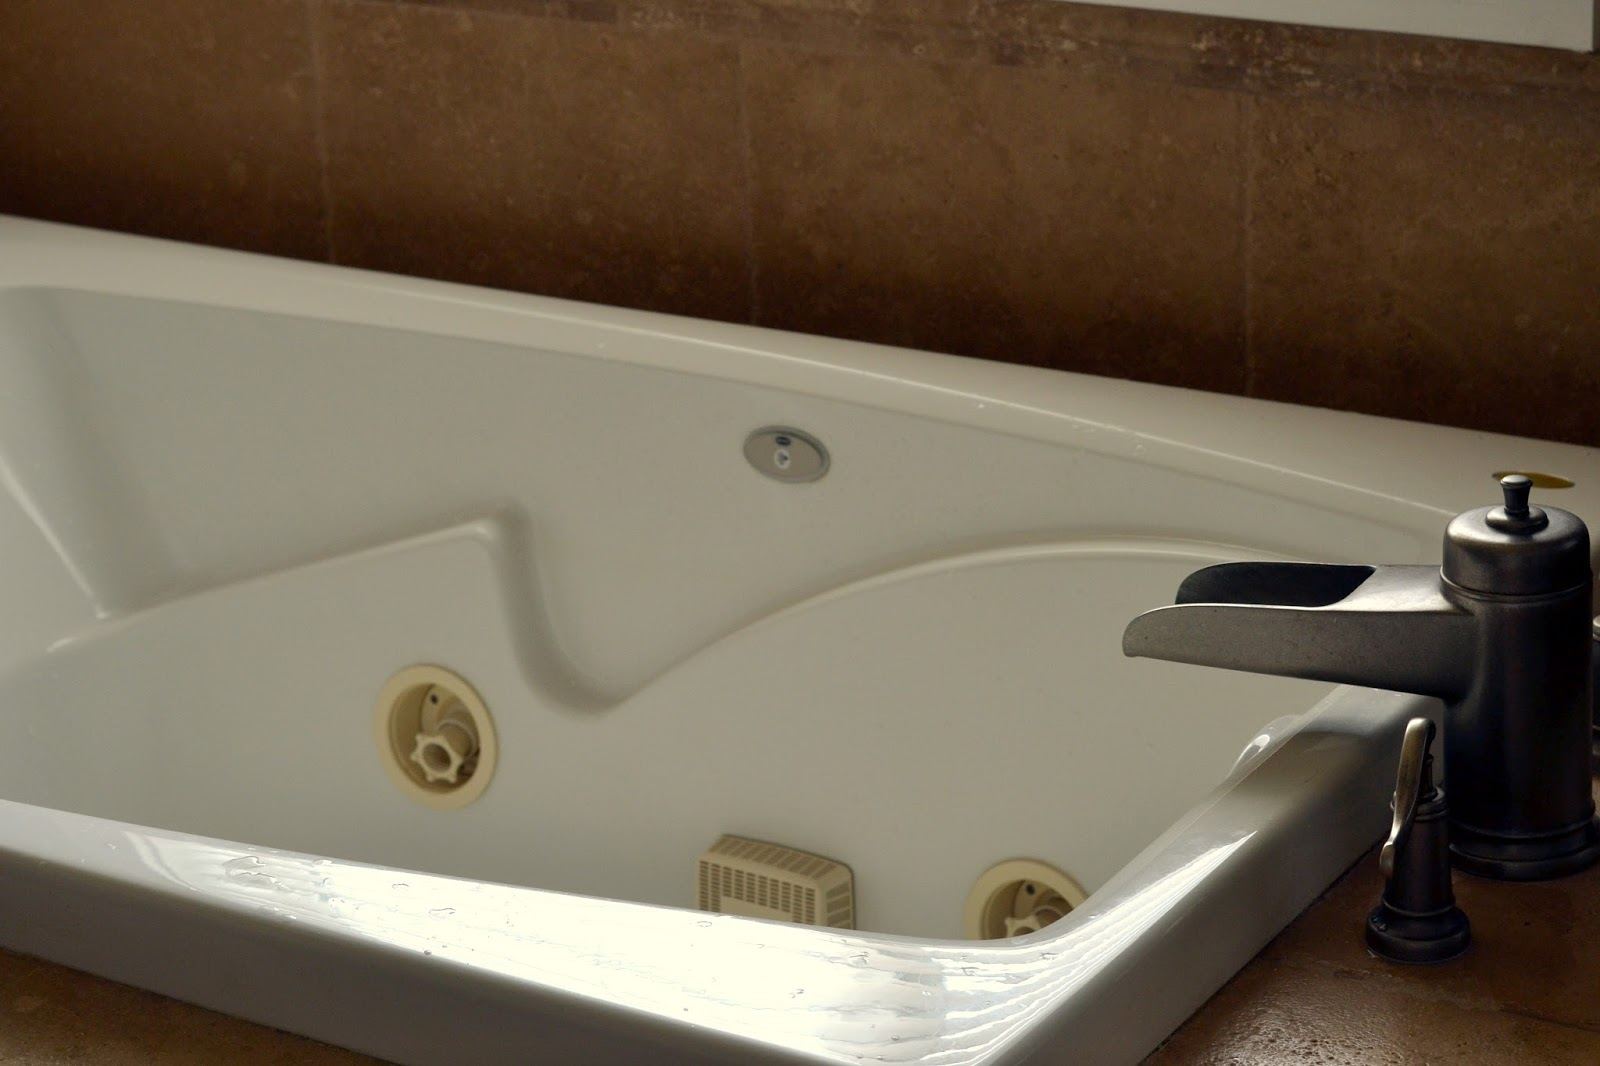 This Time You Will Be Amazed That All Of That Gunk Is Cleaned Out Of The  Pipes! This Little Cleaning Hack Will Keep Your Jetted Tub Running Clean  For A Few ...